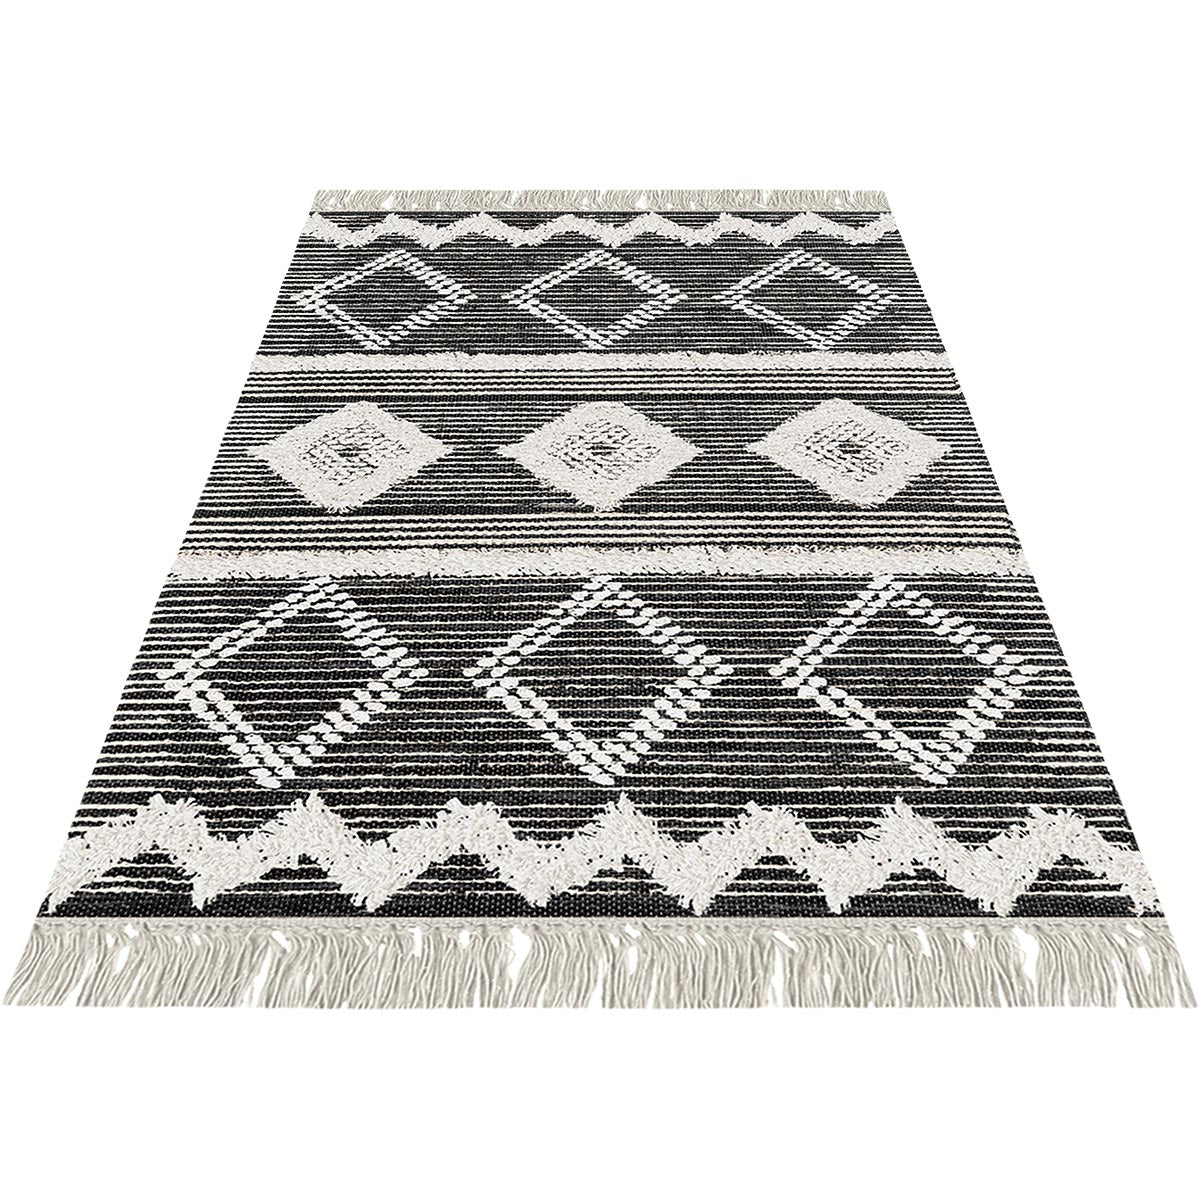 Tangier Rug 12 Black/White 2